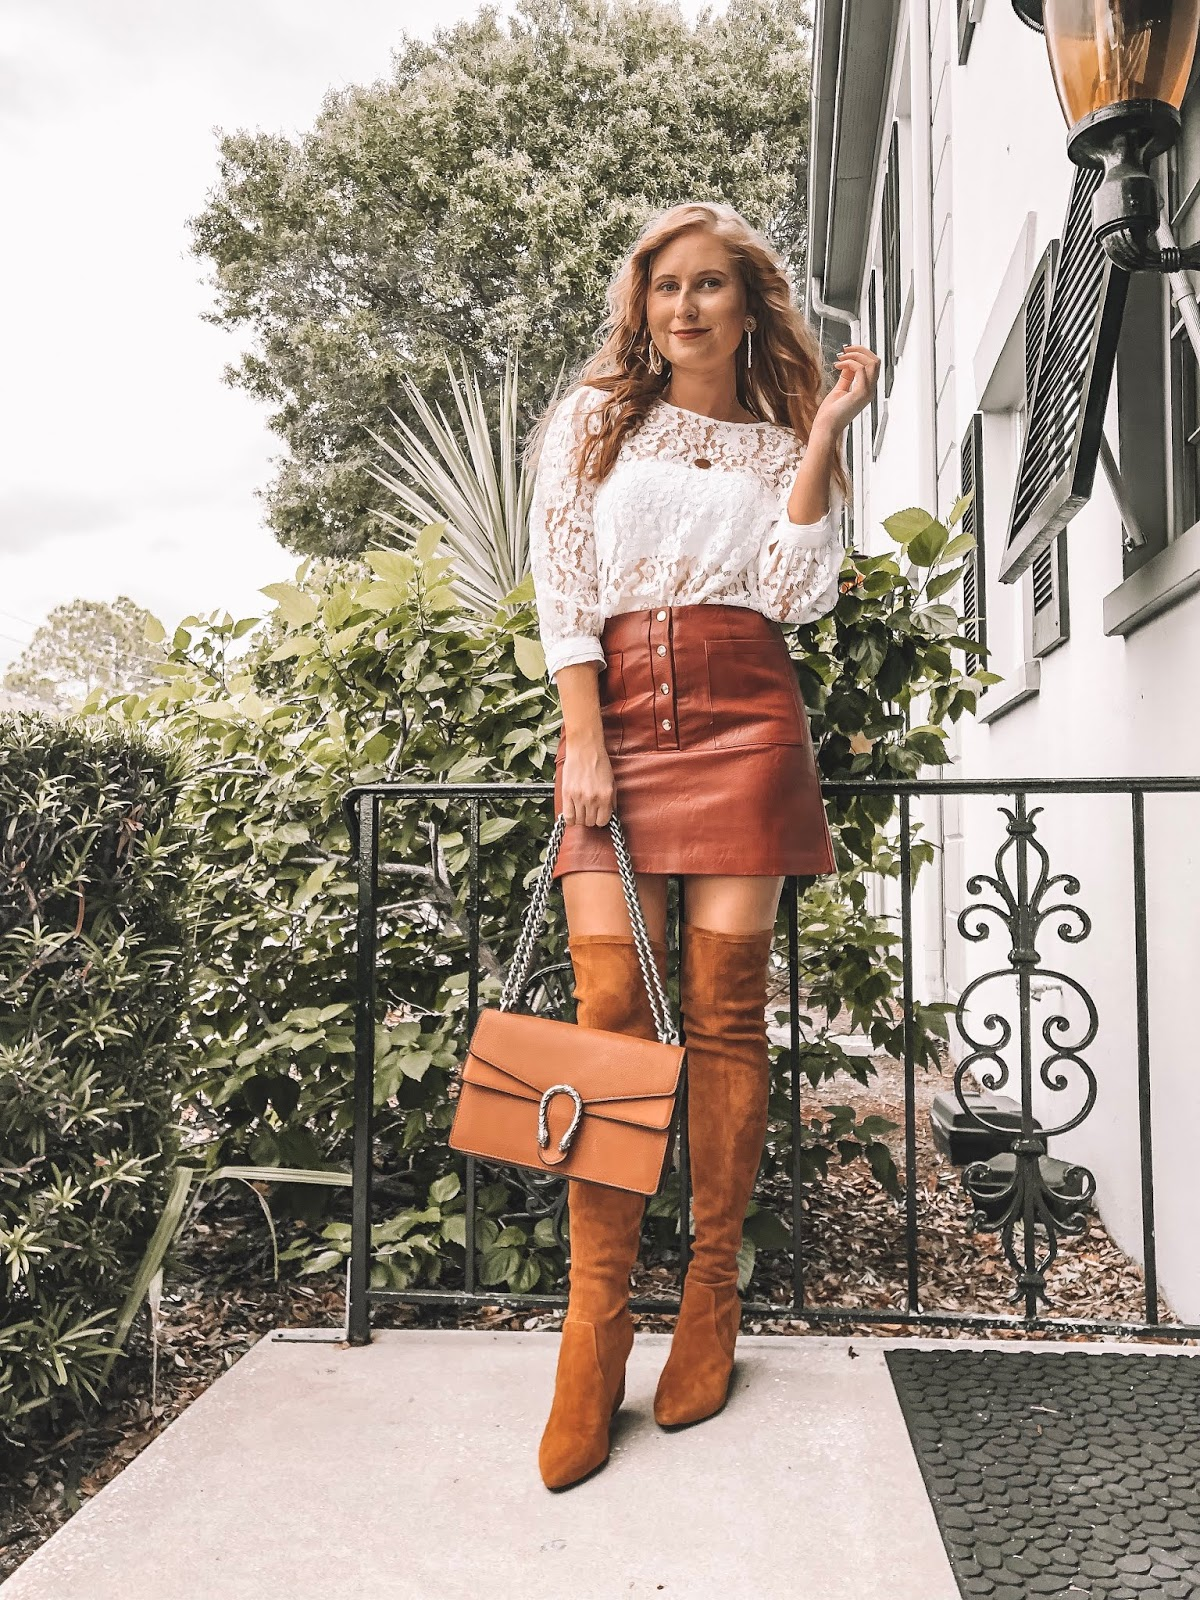 Tampa blogger Amanda Burrows is wearing an outfit for Thanksgiving. Her skirt is faux leather and her top is white and has lace. Her over the knee boots are from Goodnight Macaroon and make her legs look really long.